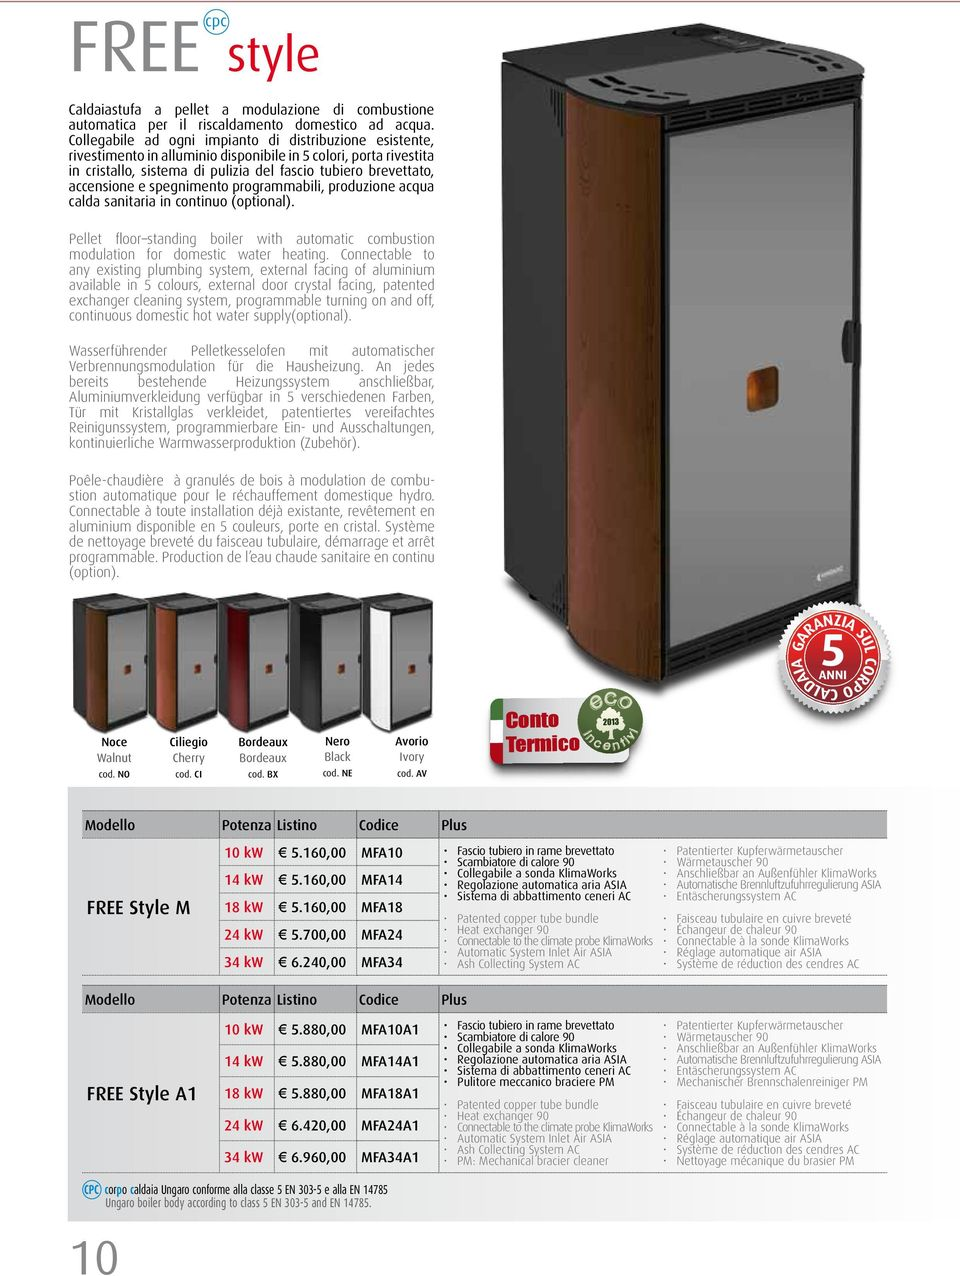 e spegnimento programmabili, produzione acqua calda sanitaria in continuo (optional). Pellet floor standing boiler with automatic combustion modulation for domestic water heating.